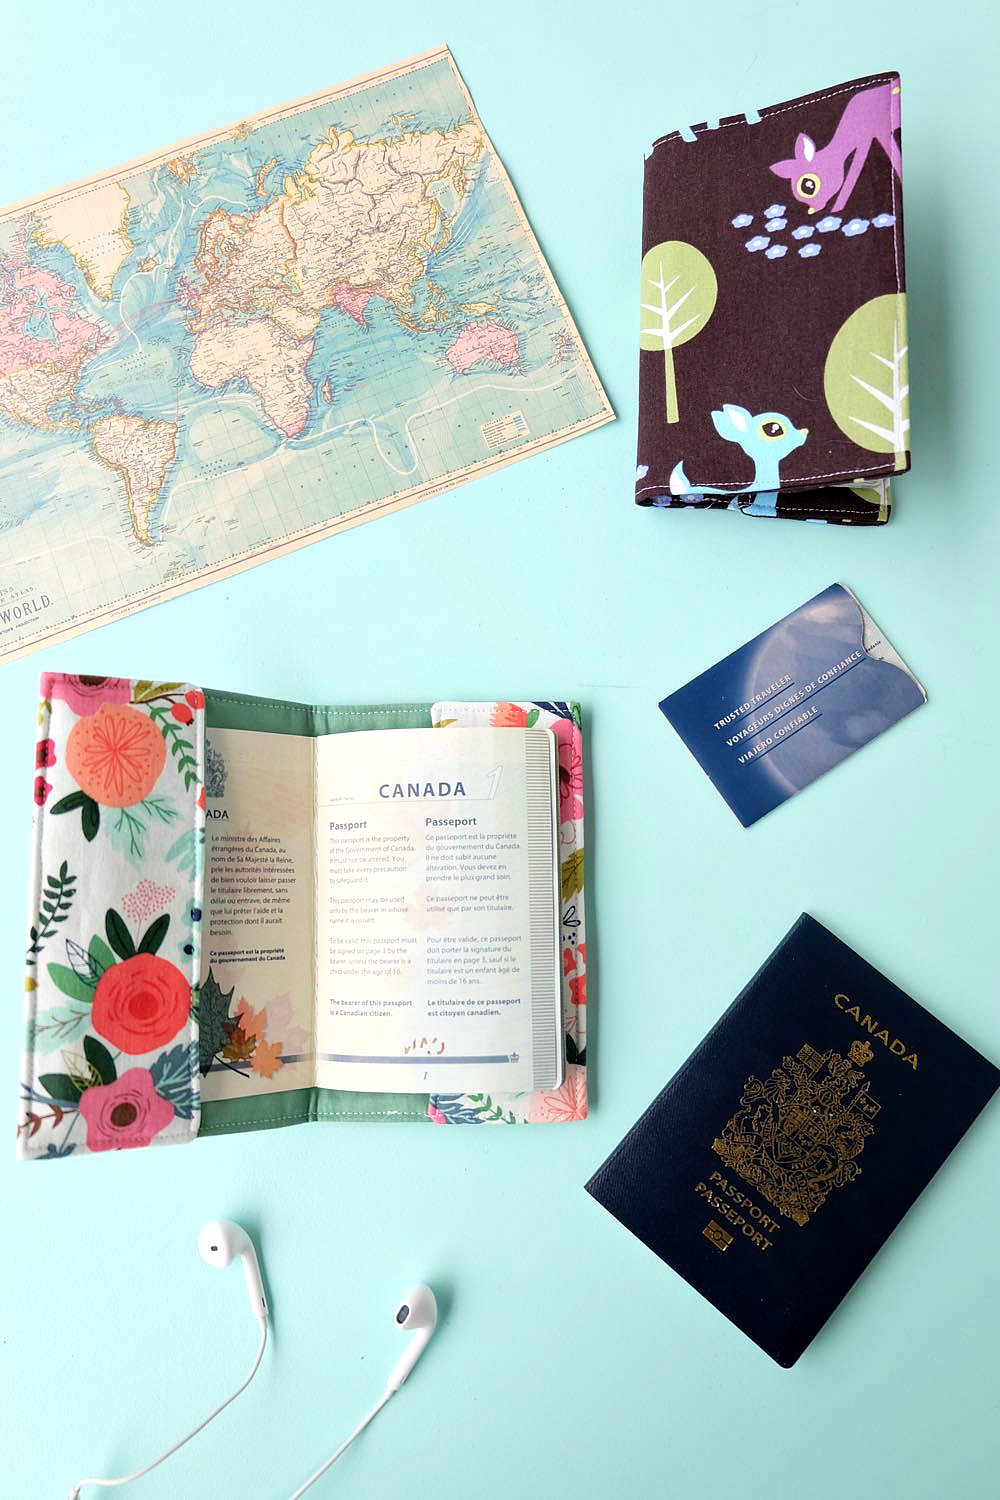 Know someone who loves to travel? This 30 minute DIY passport holder sewing tutorial makes a lovely handmade gift for anyone who has the travel bug! Customize it with your favorite fabric. The passport holder has a pocket to hold extra ID. This project tutorial has step by step photos making it so easy to make at home. Also comes with a free Cricut cut file for if you want to cut your fabric with the Cricut Maker. #sewing #craft #DIY #travel #cricutmaker